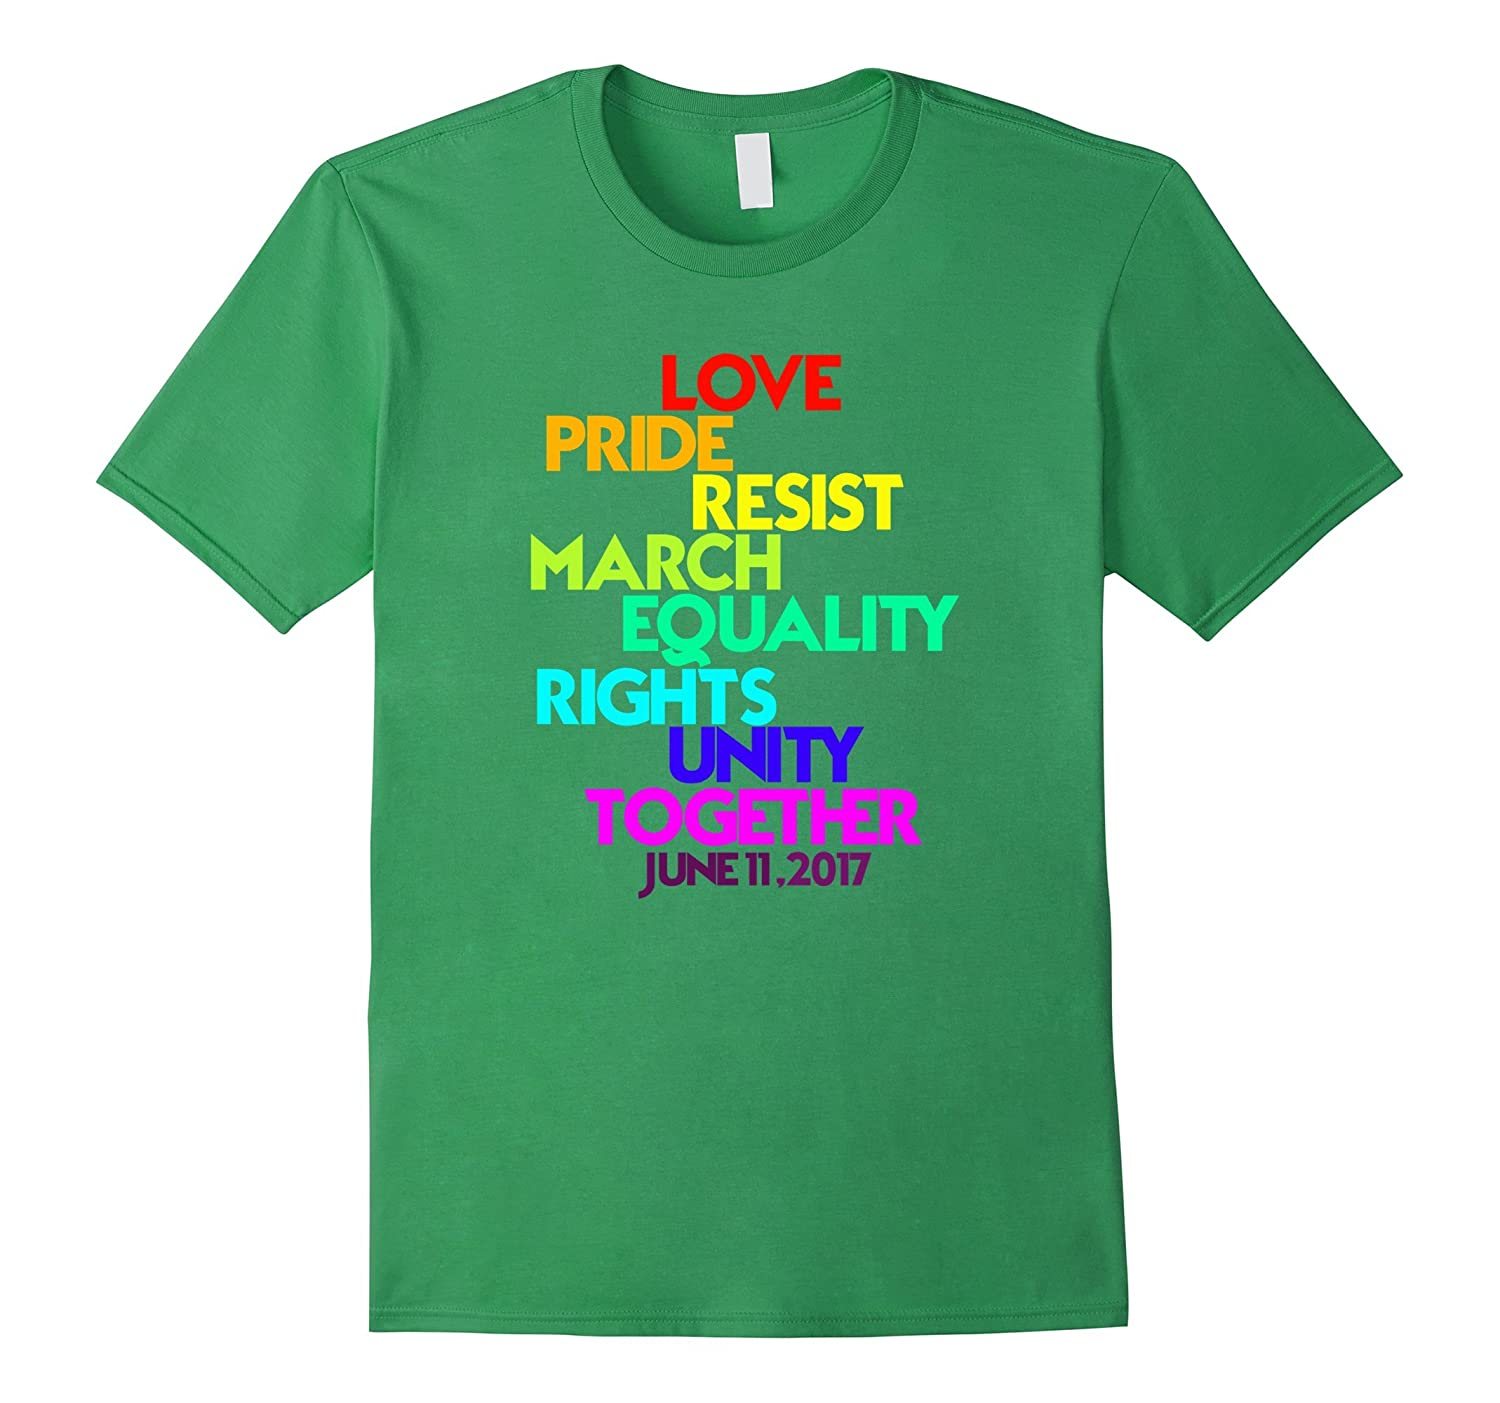 329cdfb35dc52 Love Pride Resist March Equality Rights Unity LGBT Shirt-Vaci